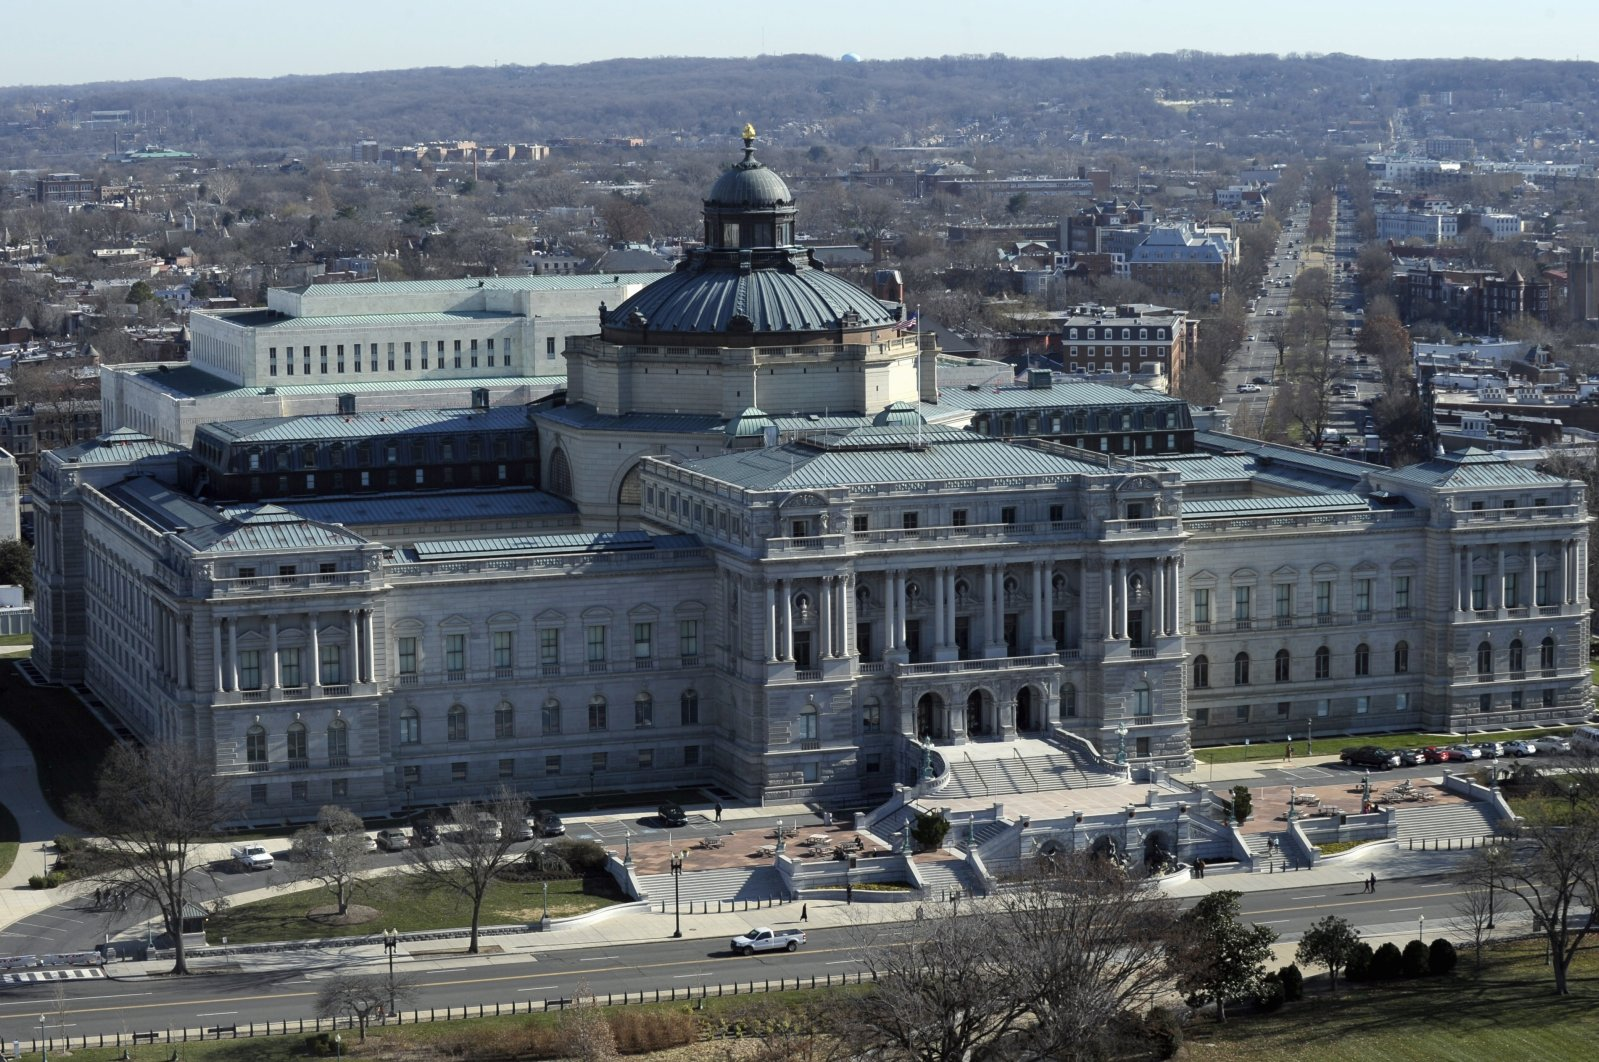 The Library of Congress is seen in Washington, D.C., U.S., Dec. 19, 2013. (AP Photo)